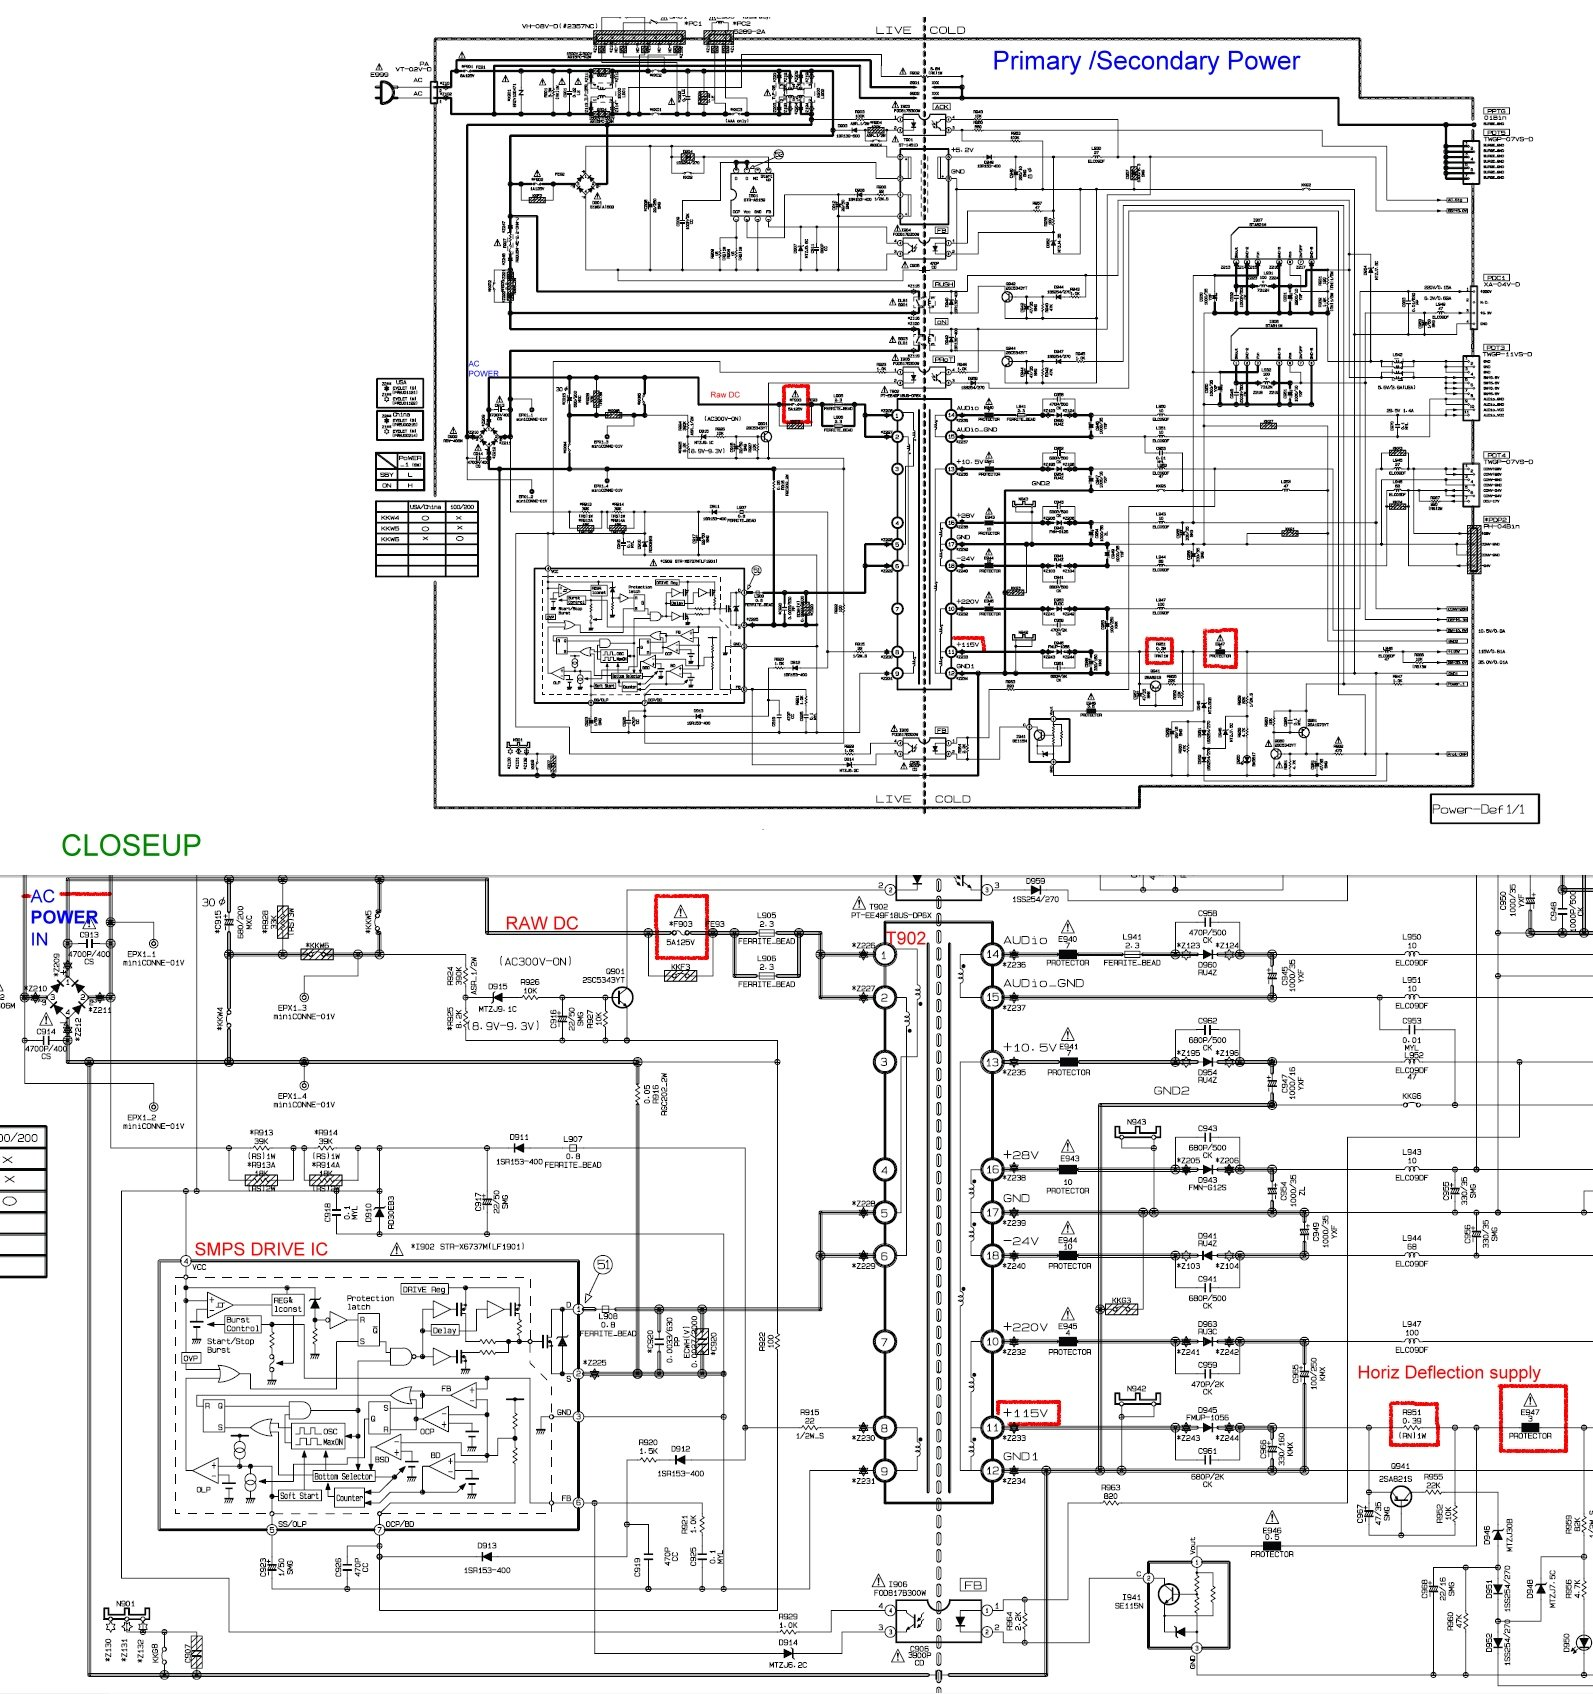 wiring diagram for vizio tv   27 wiring diagram images